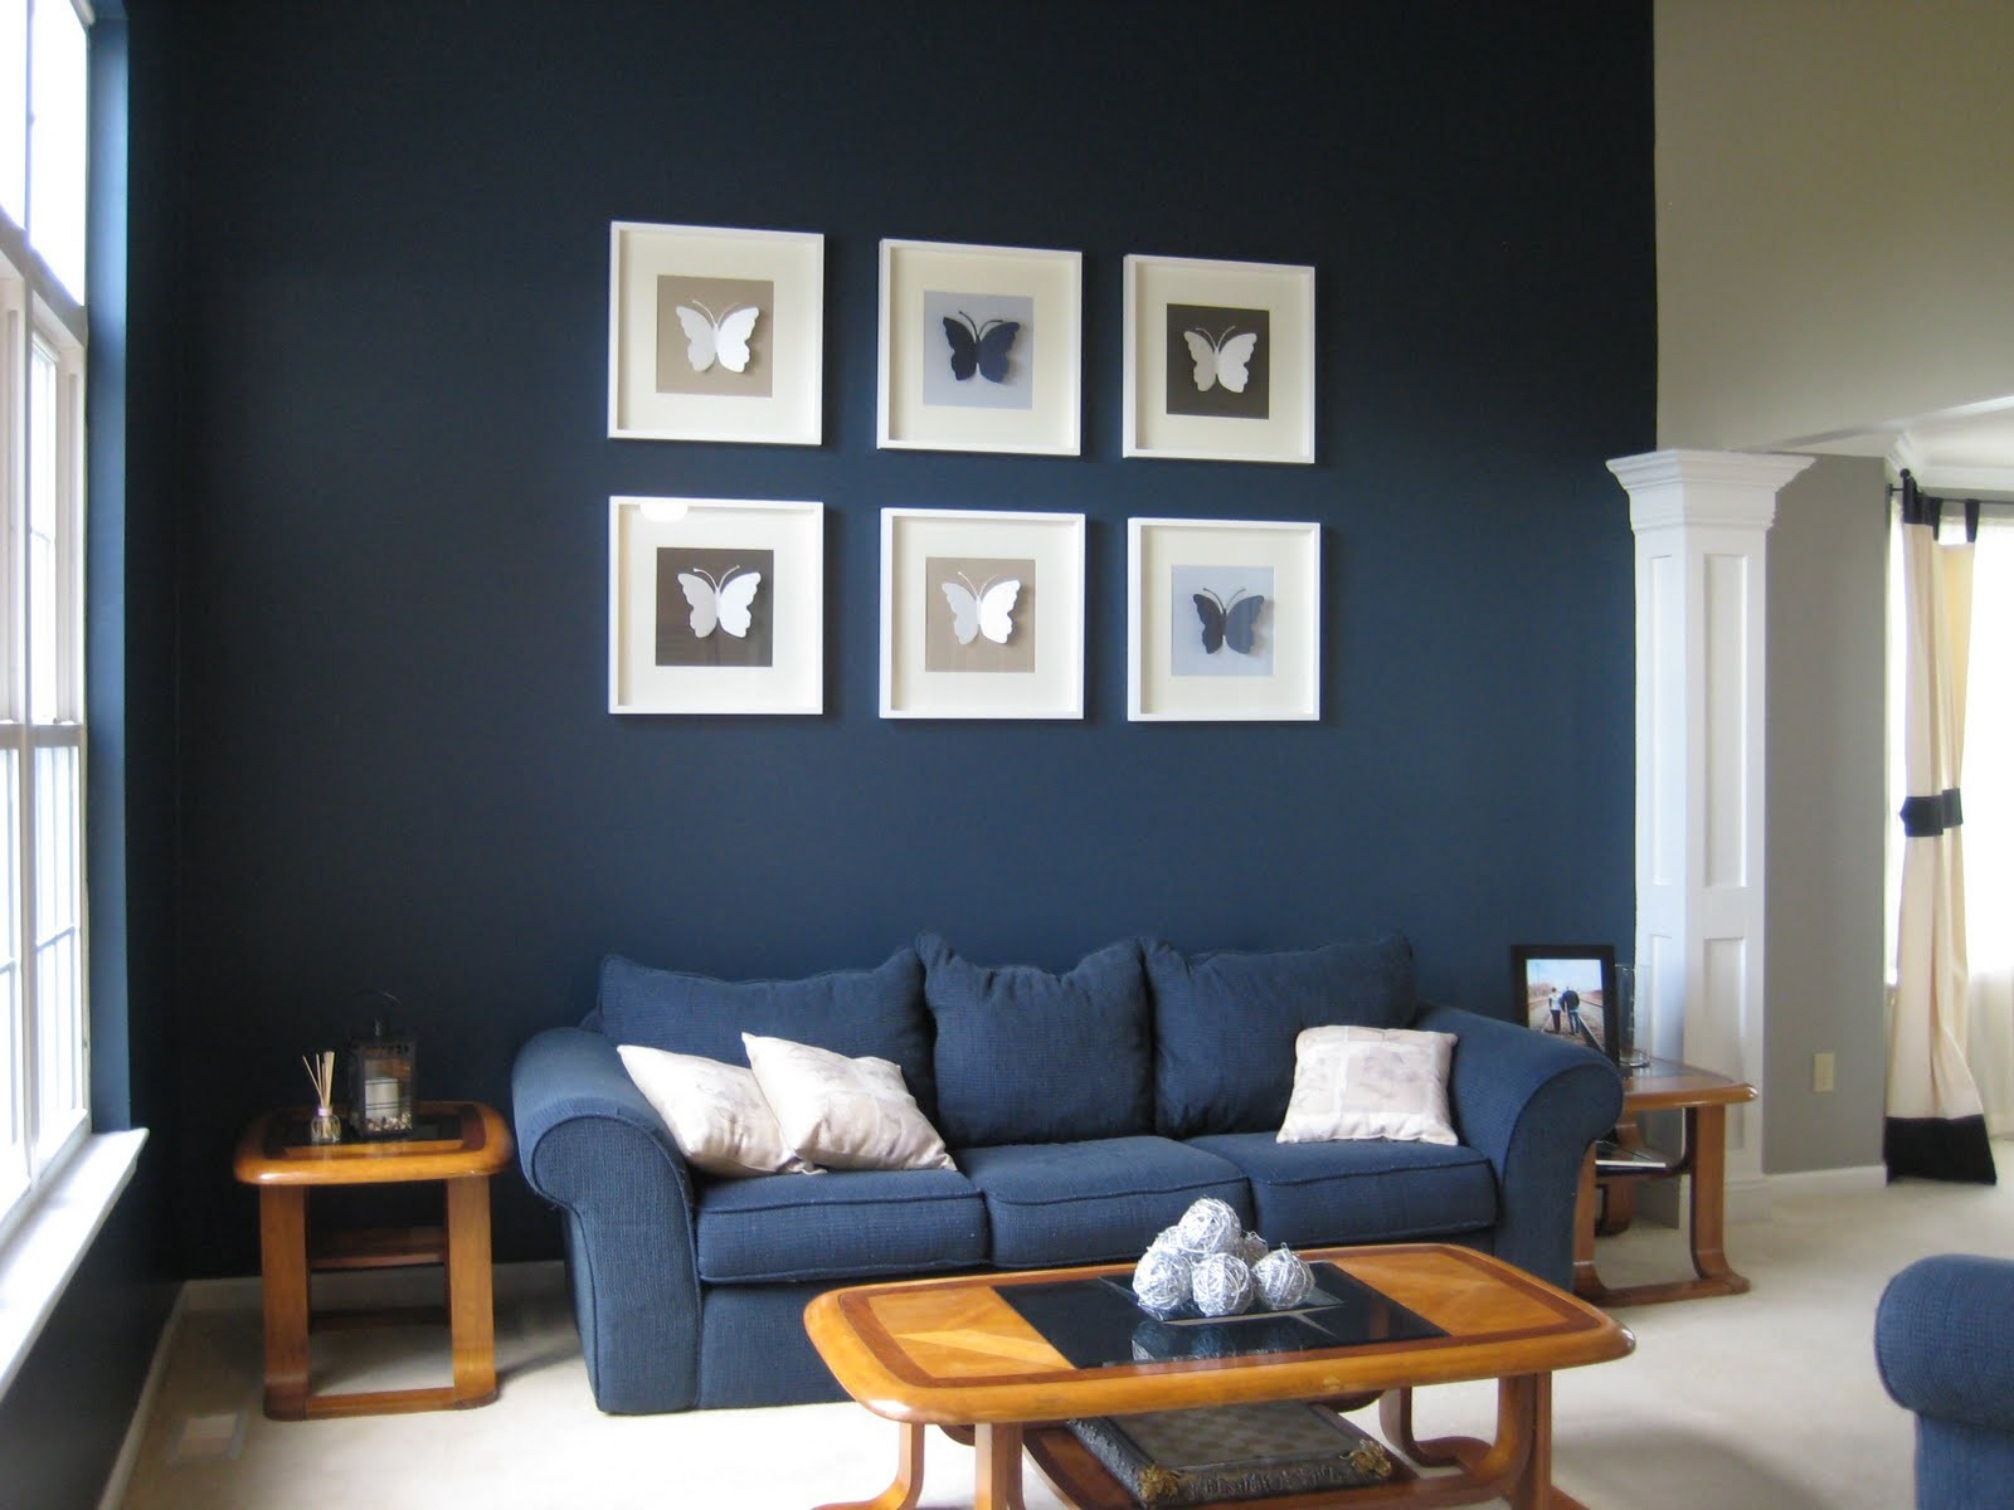 16 Dazzling Blue Living Room Ideas Cozy Design And Photos  Inspiration Blue Living  Room Ideas With White Pictures Frame Over Blue Fabric Sofa And Wooden  Dark Blue Living Room Walls with Butterflies Mounted In Frames jpg  . Frames For Living Room. Home Design Ideas